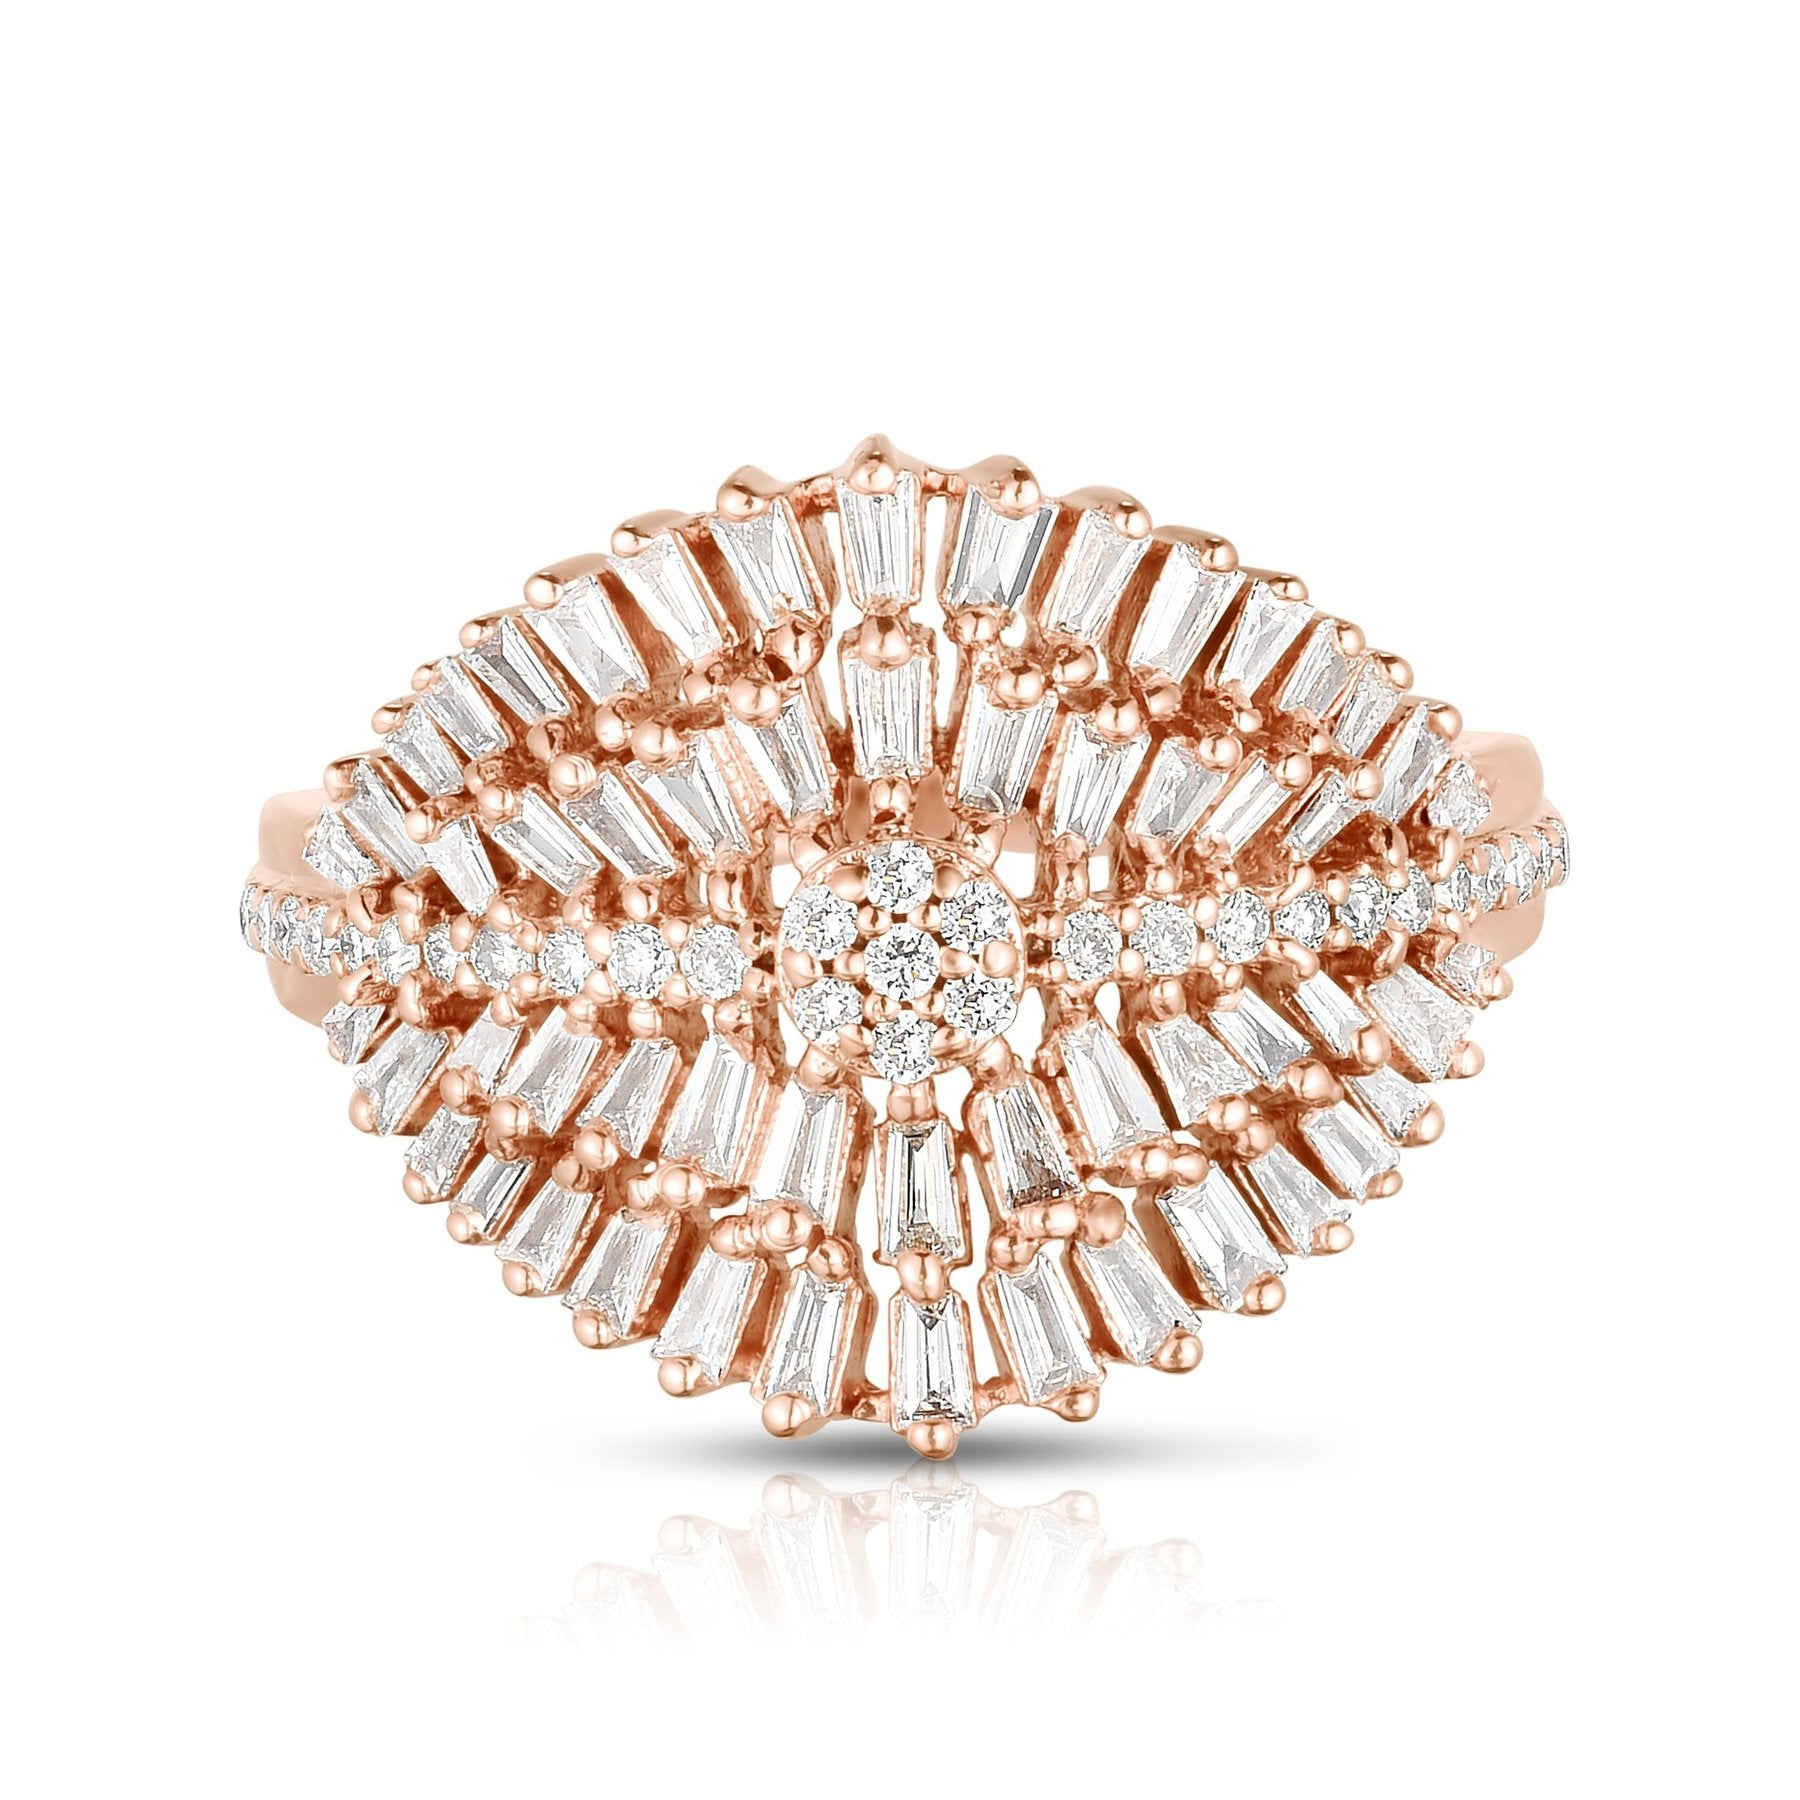 Luna Skye Feathered Baguette Diamond Ring